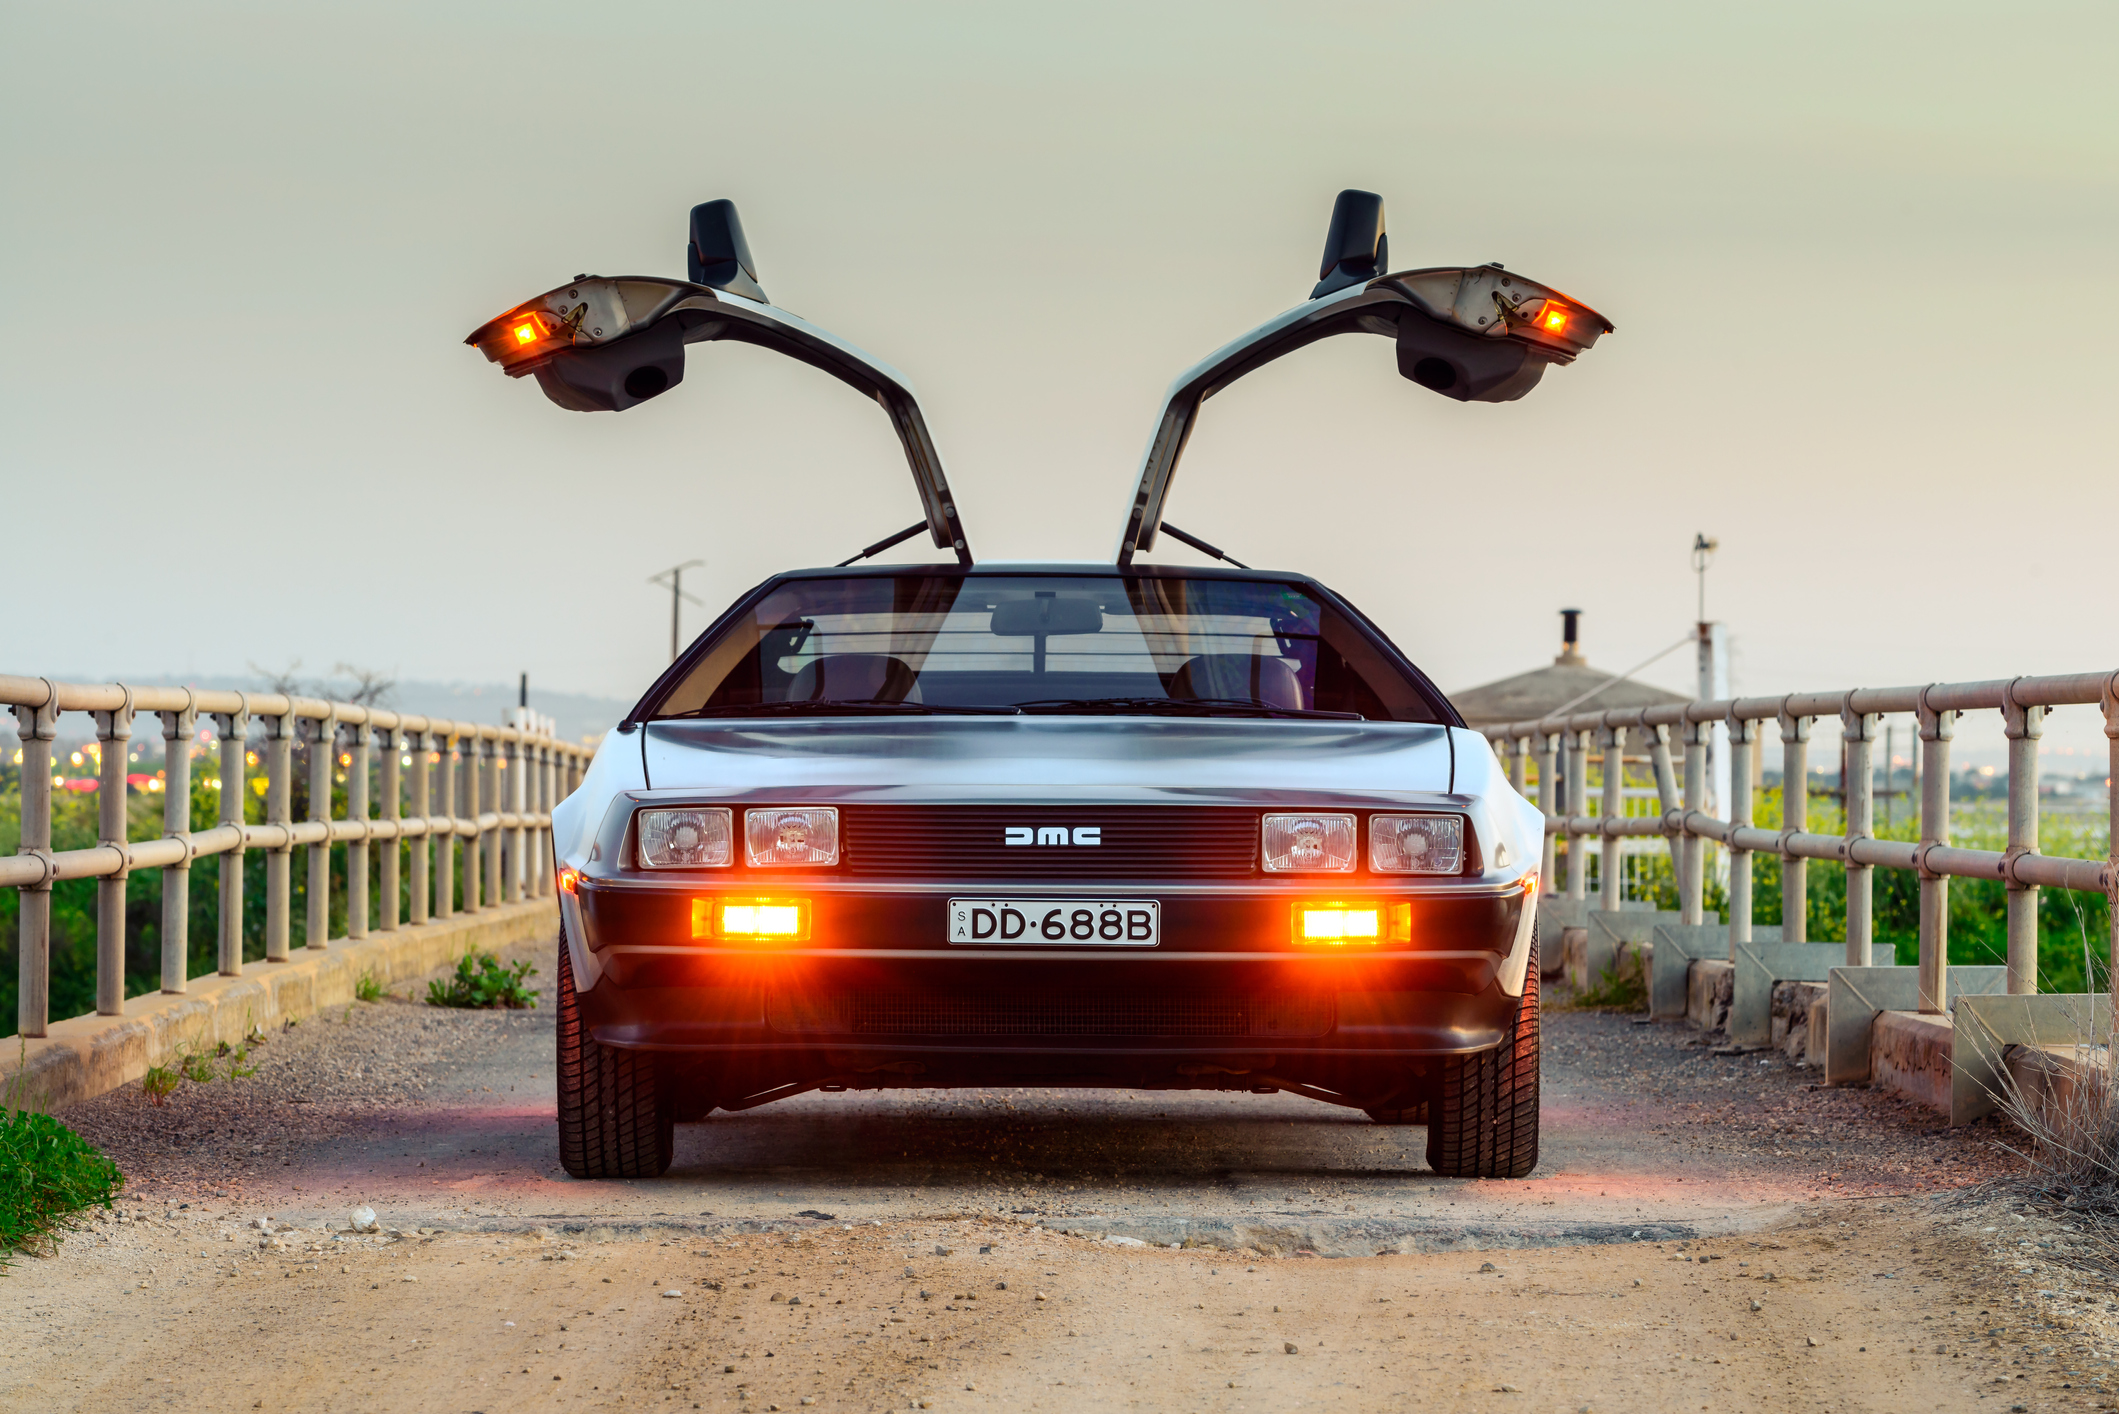 The famous DeLorean gull-wings in action